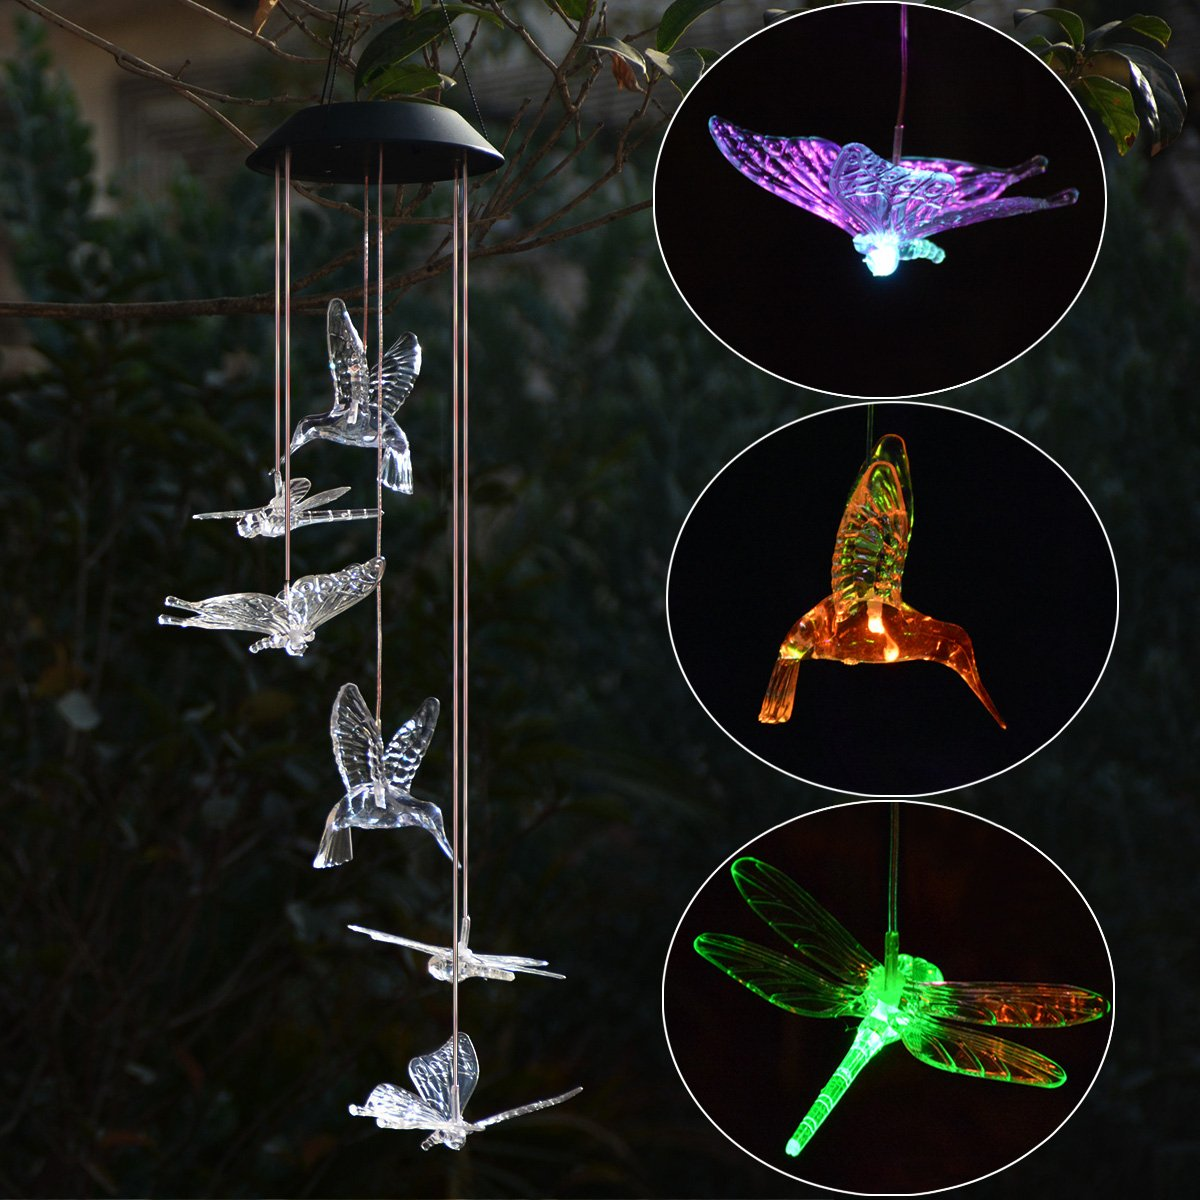 Homeleo Solar Light Up Wind Chimes, Butteryfly Hummingbird Dragonfly Wind Chimes, Color Changing LED Mobile Windchimes for Outdoor Garden Patio Decoration